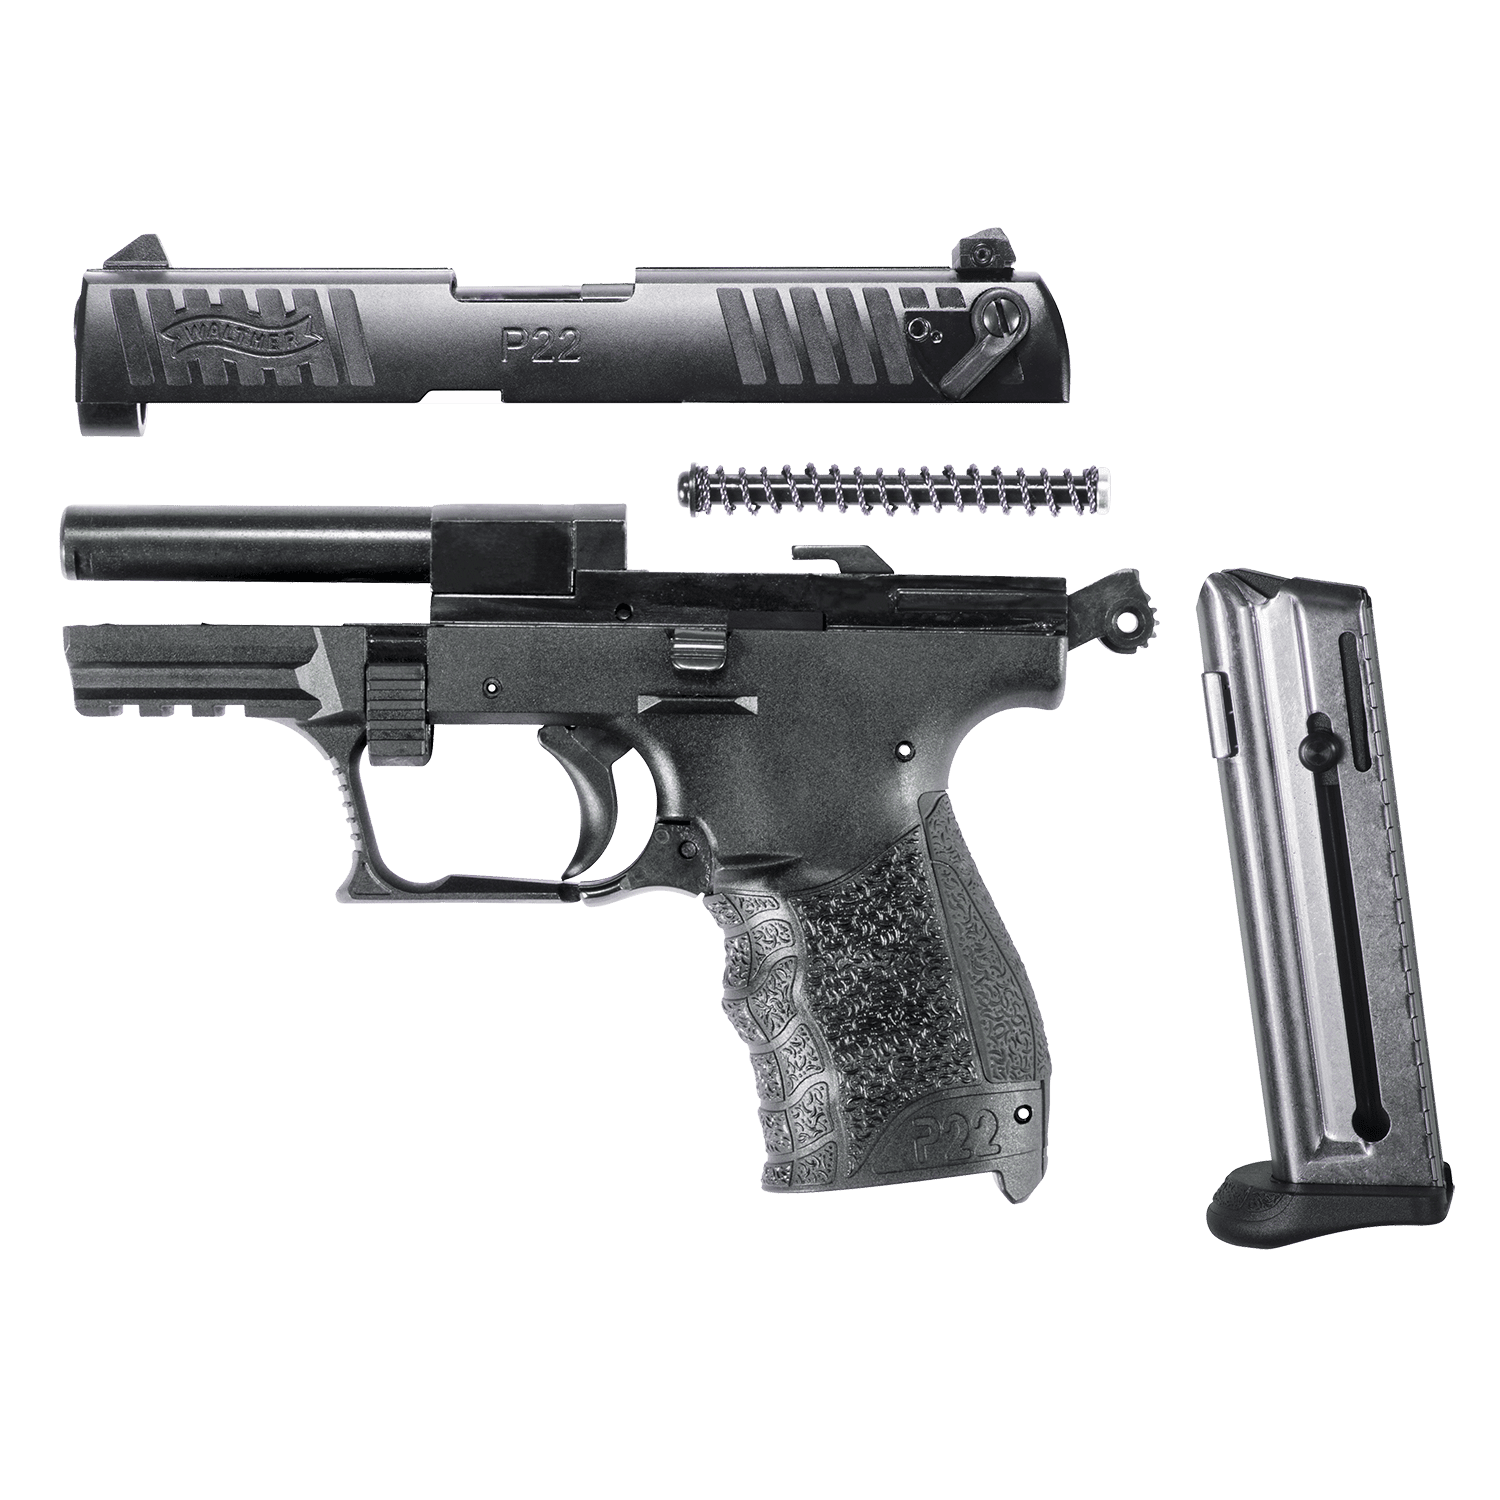 Walther P22 Review - Our Thoughts 2